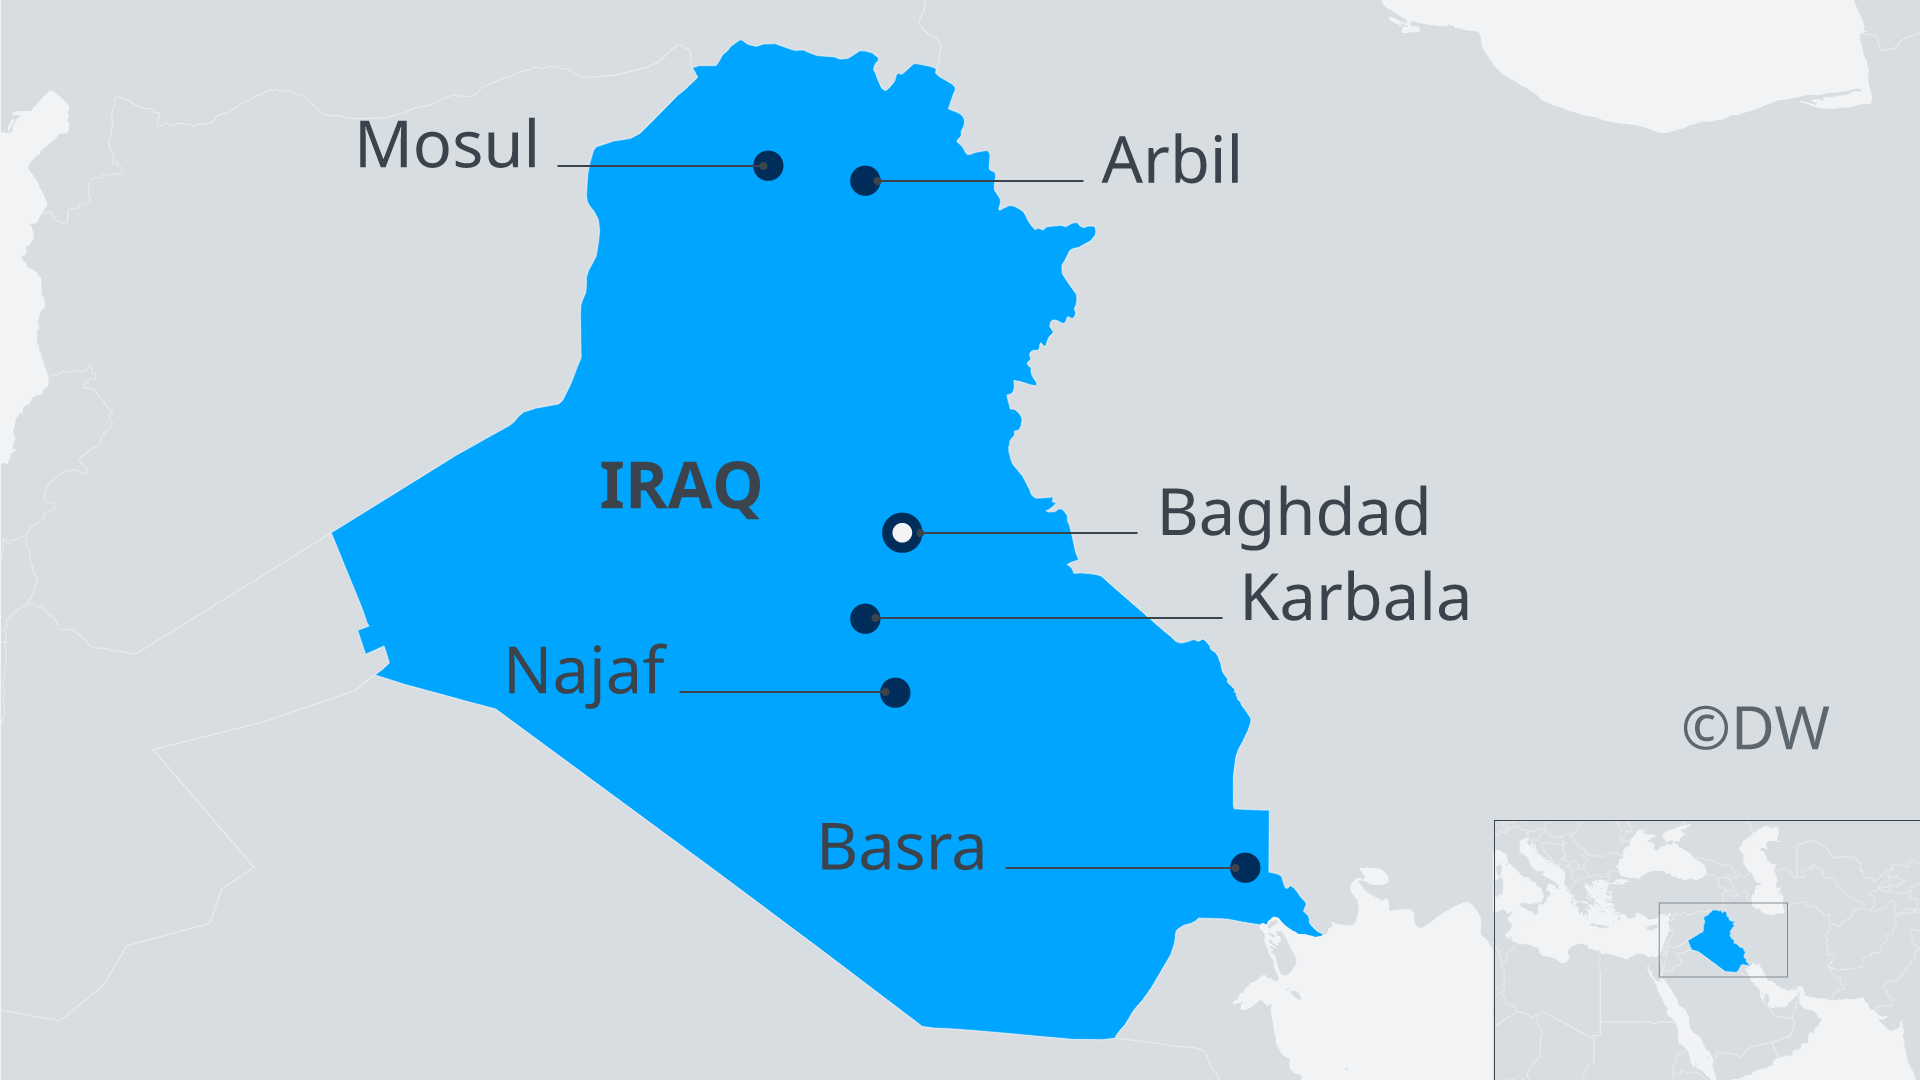 DW Infographic map of Iraq